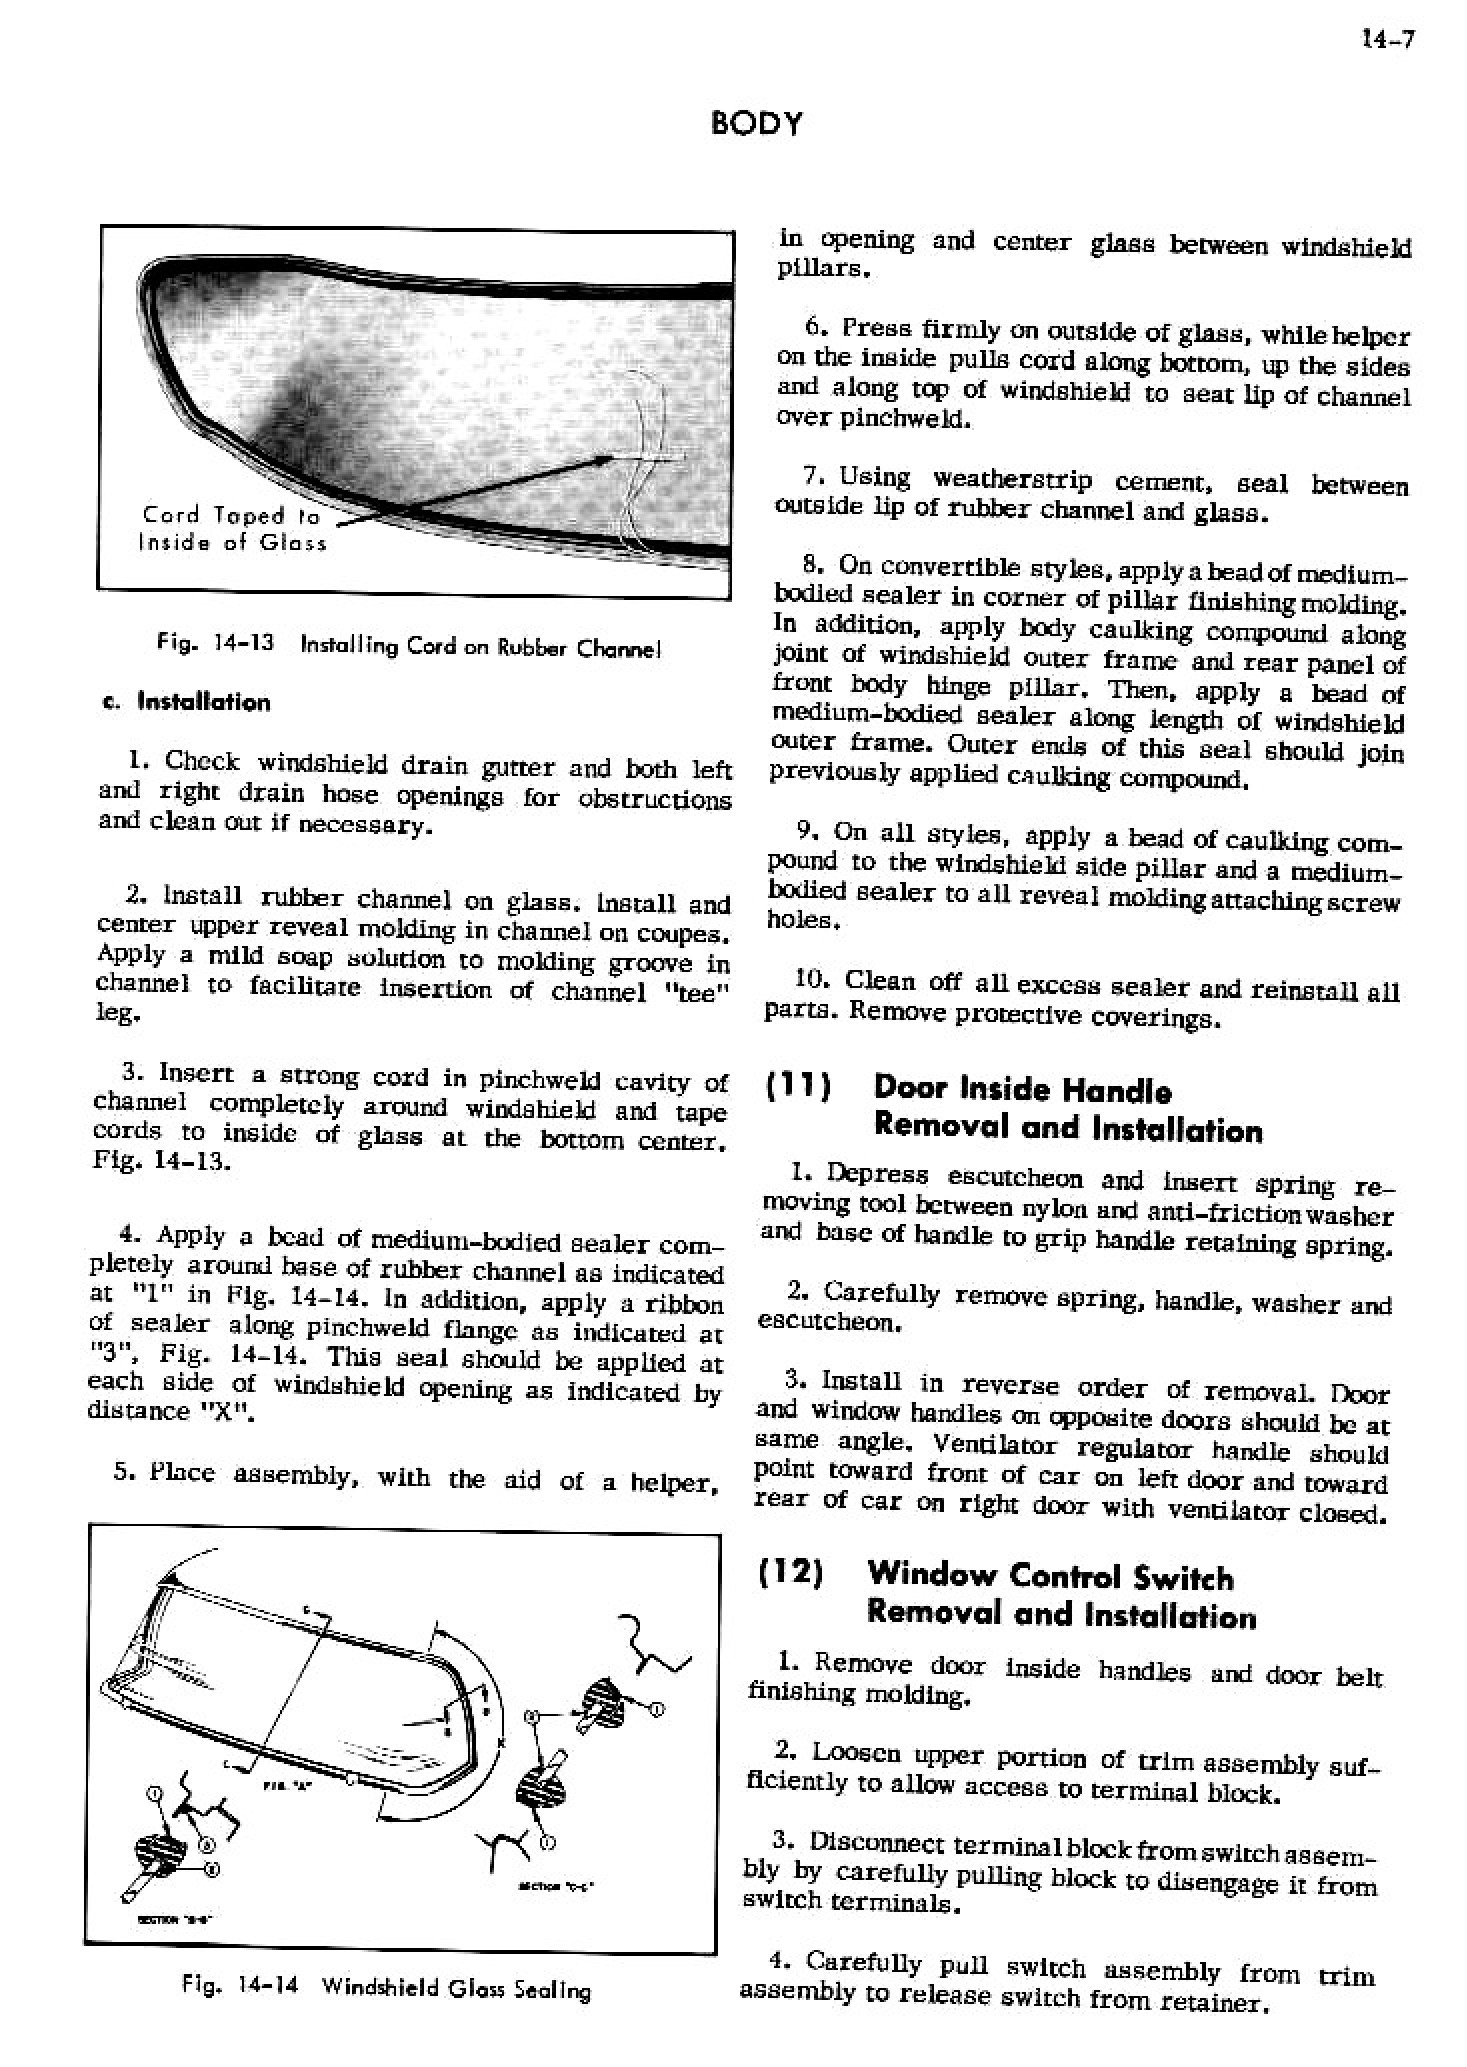 1956 Cadillac Shop Manual- Body Page 7 of 87